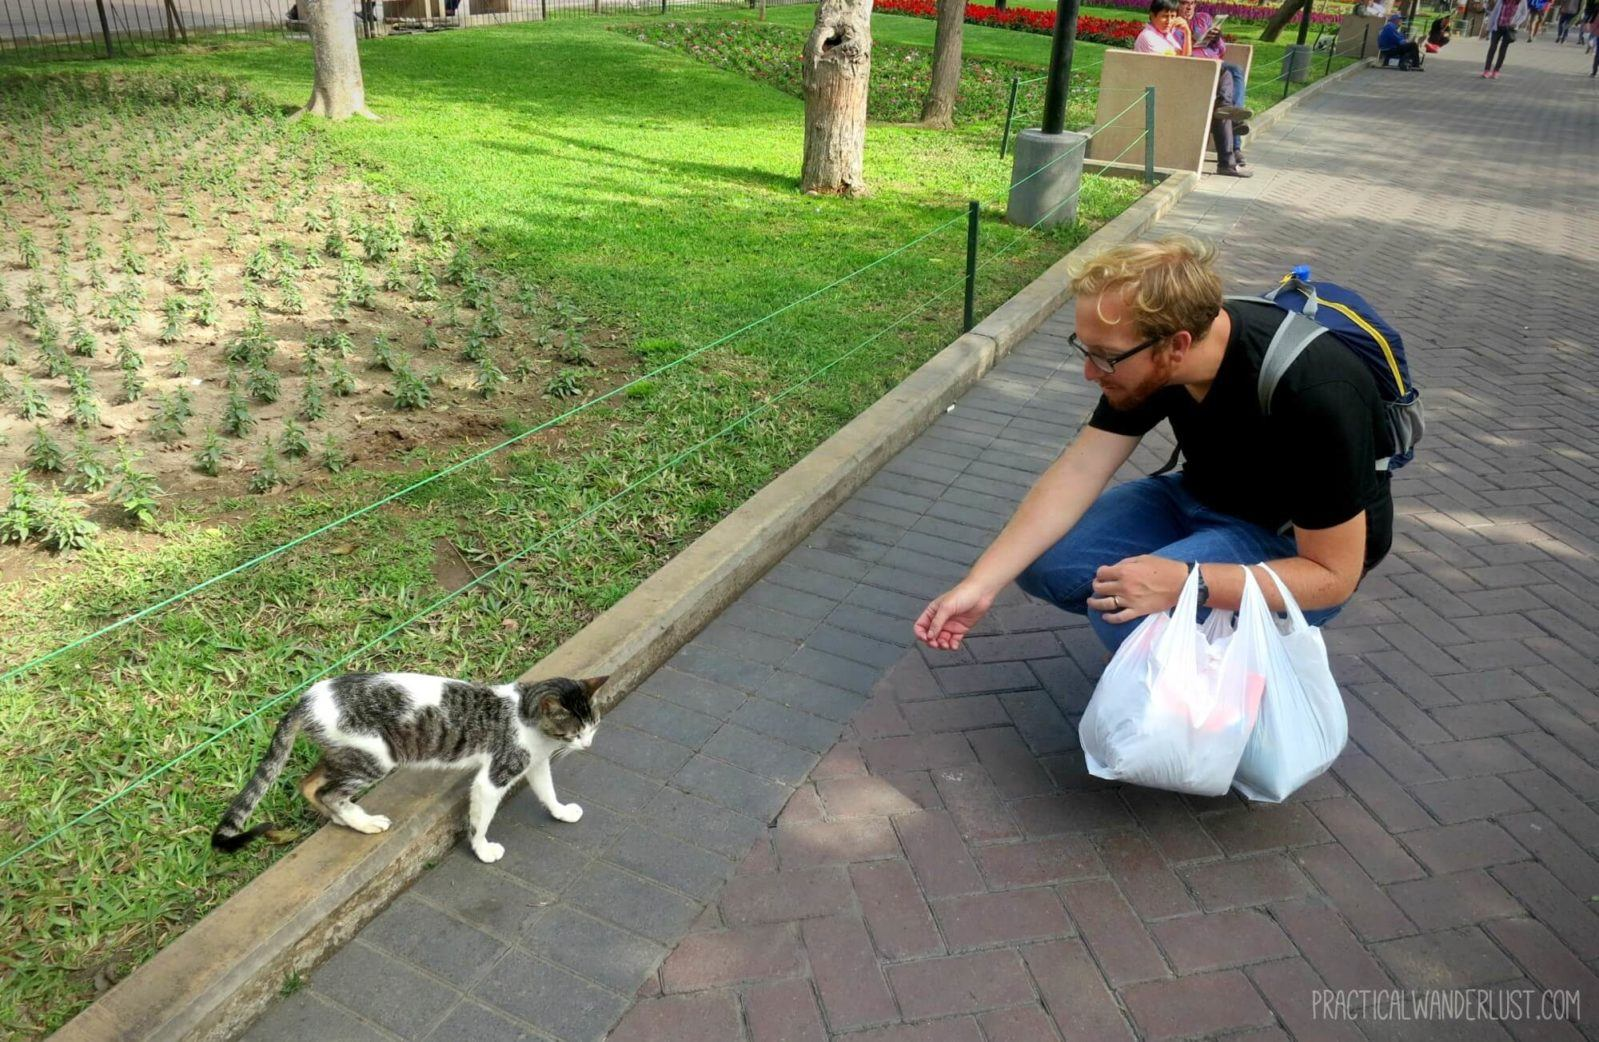 Making a cat friend at Kennedy Park! The Kennedy Park cats are friendly and many of them love to make new friends. Kennedy Park is in Lima, Peru